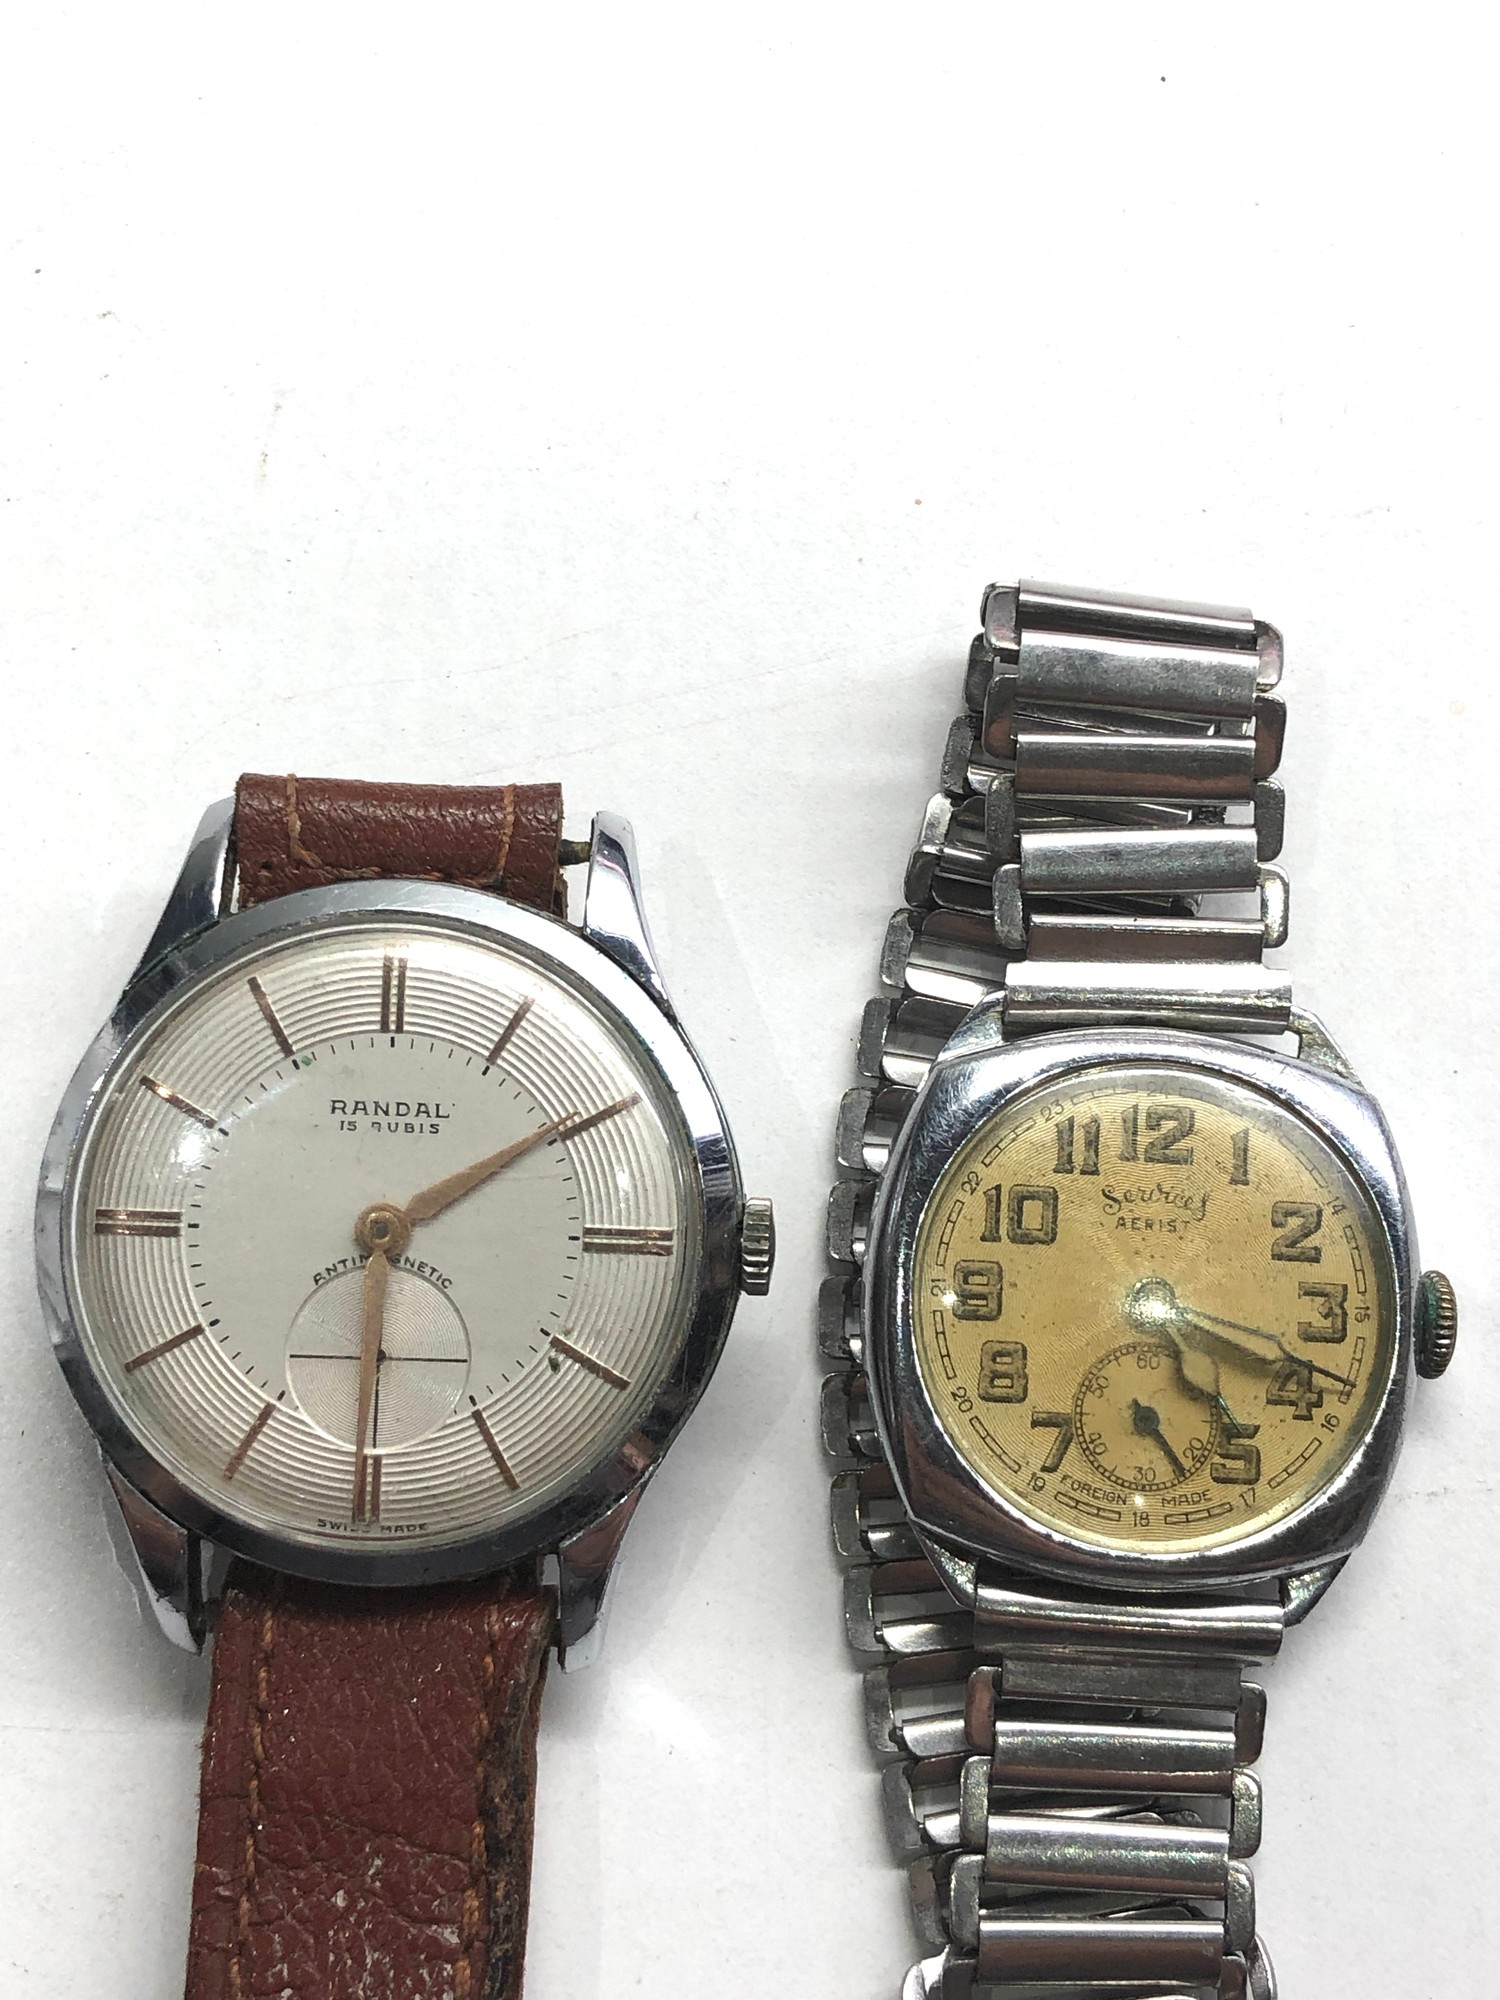 Selection of 4 vintage gents wristwatches includes rotary oris services and randal untested spares - Image 2 of 5